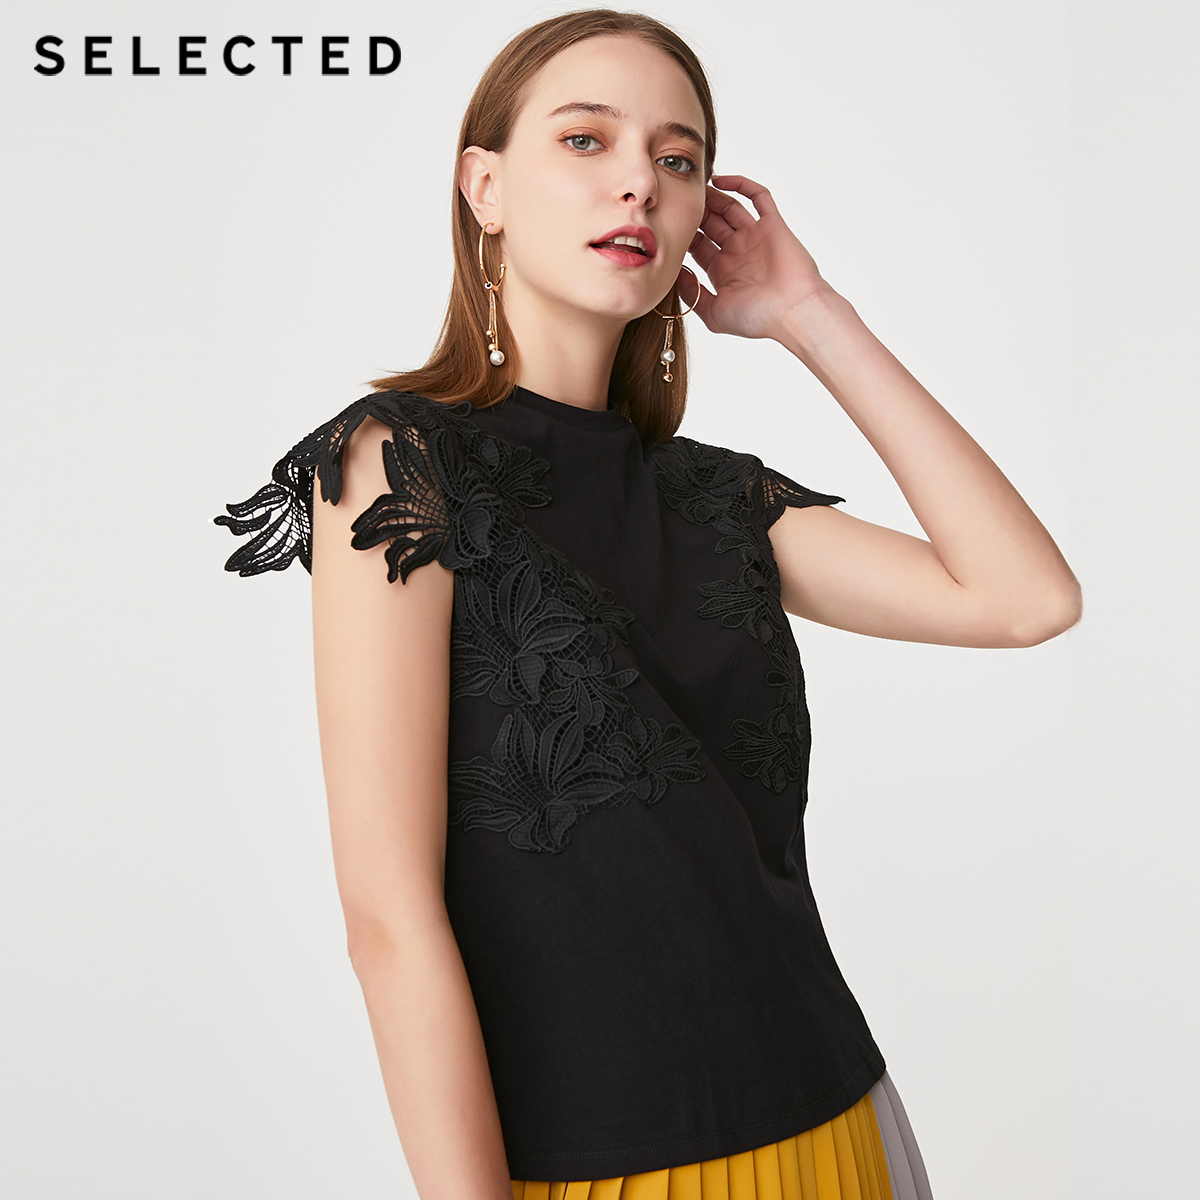 SELECTED Pure Color Lace Cut-outs Round Neckline Sleeveless Tops S|419201526